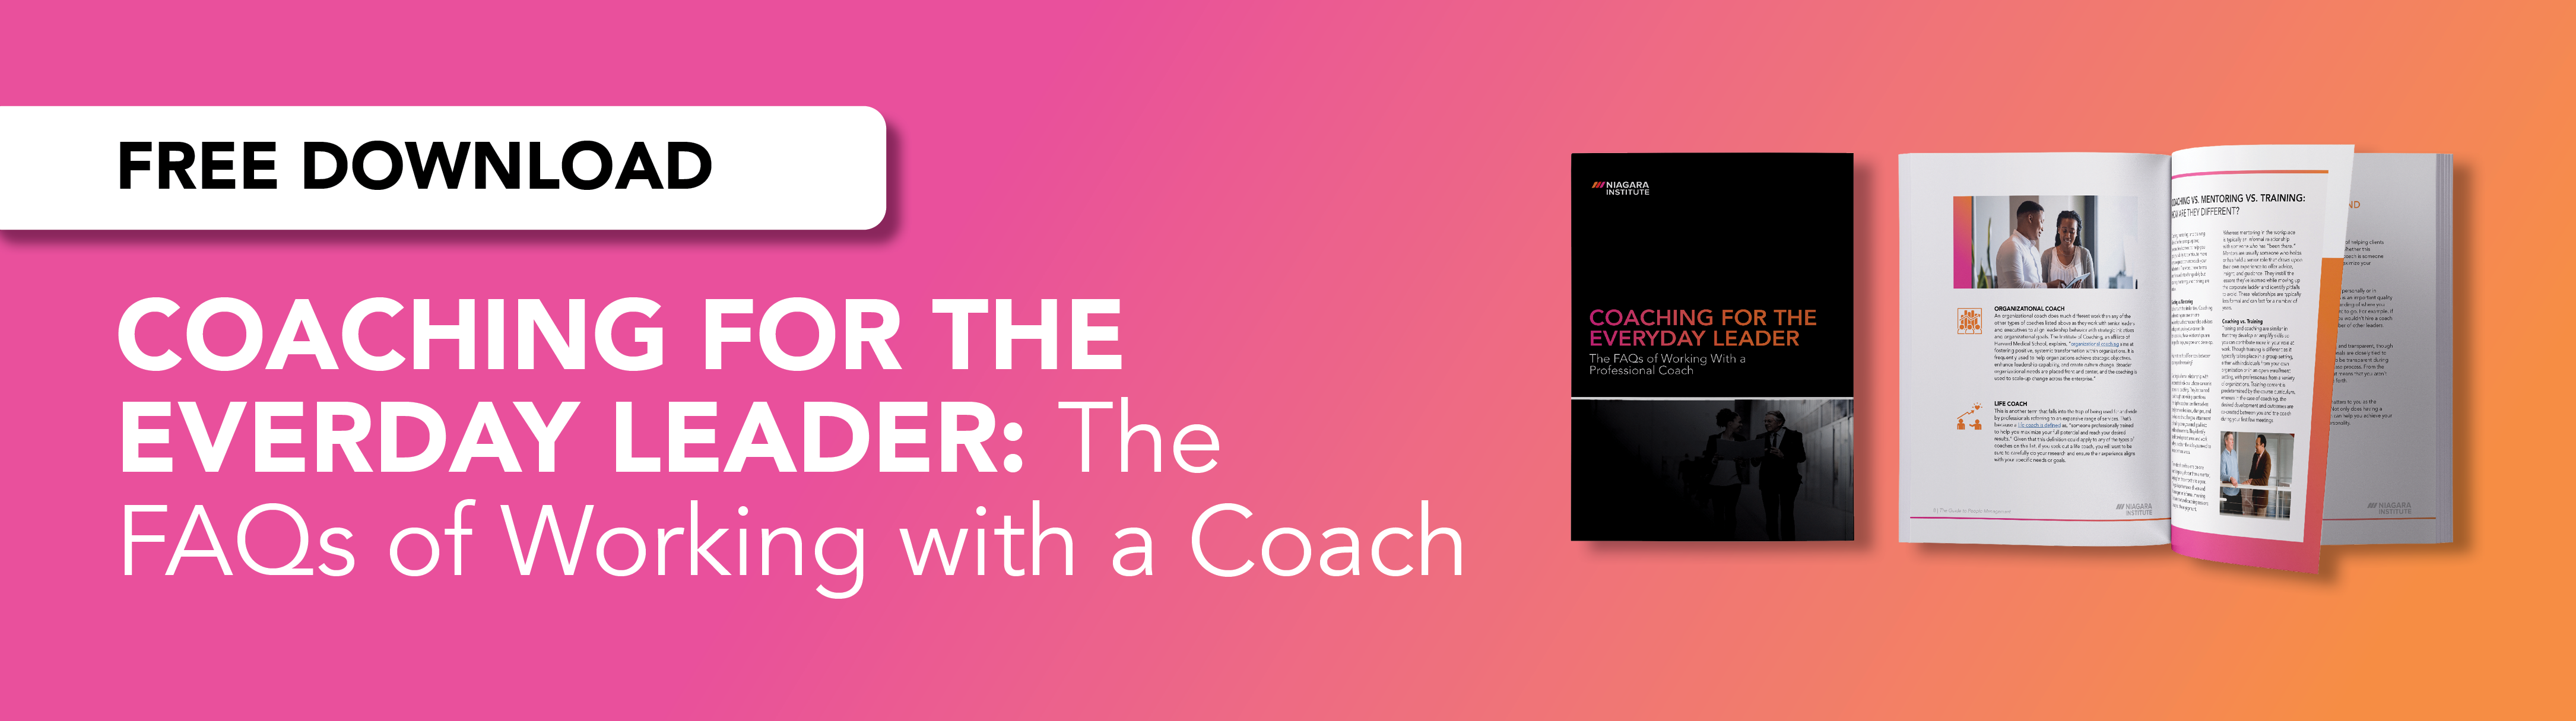 Download the guide to professional leadership coaching